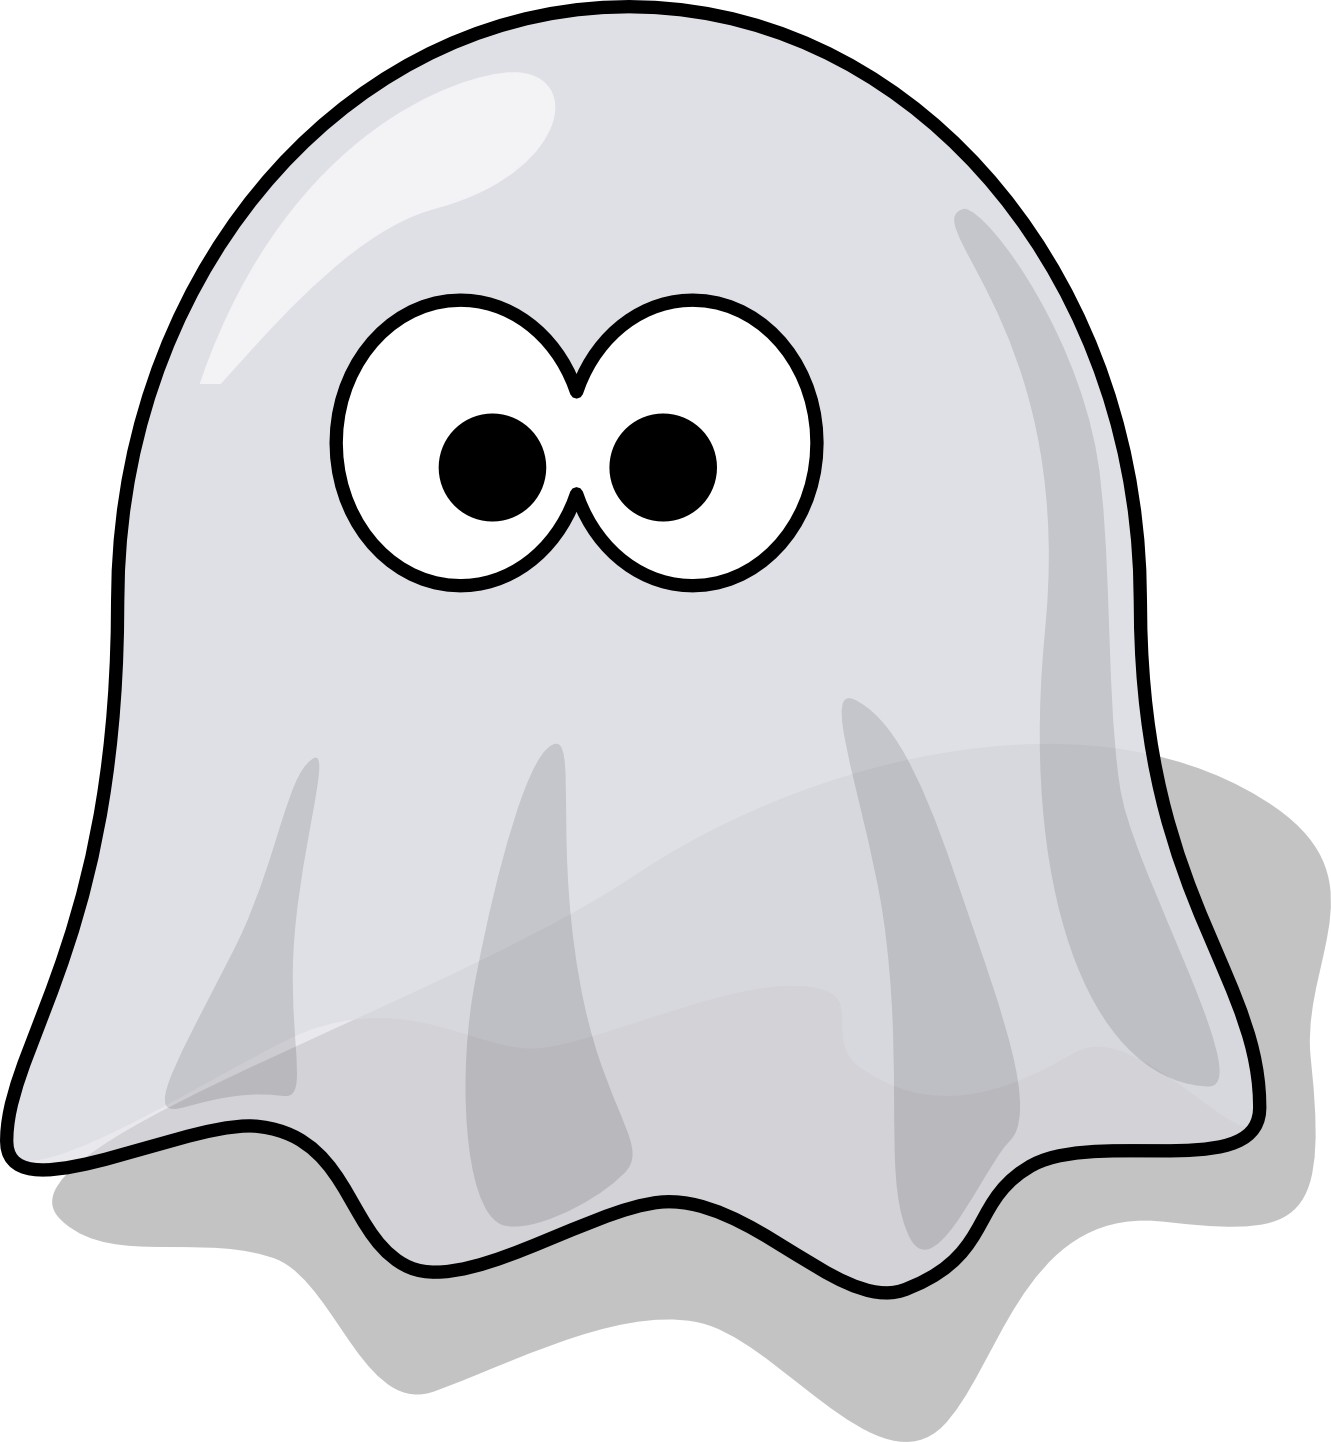 Outline clipart ghost. Clip art panda free